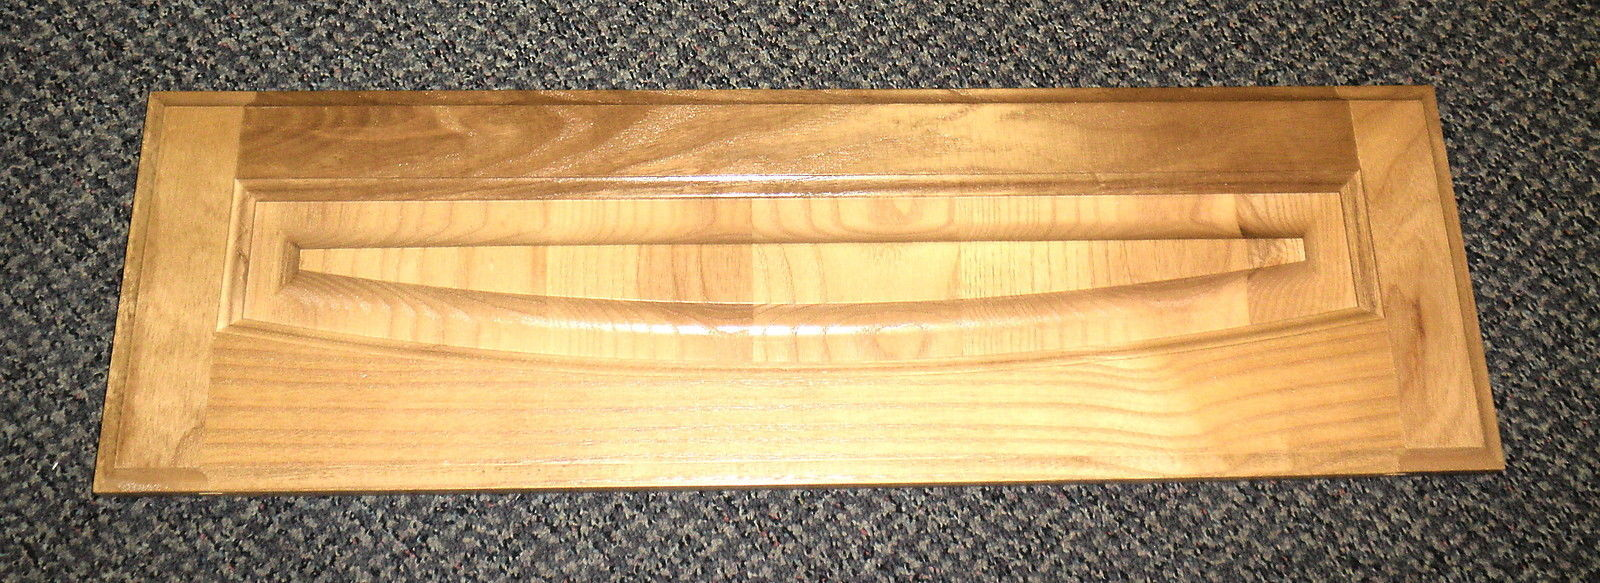 """Solid Wood Raised Panel Cabinet Door Size: 7 3/4"""" X 25 3/4"""" X 3/4"""" Thick"""